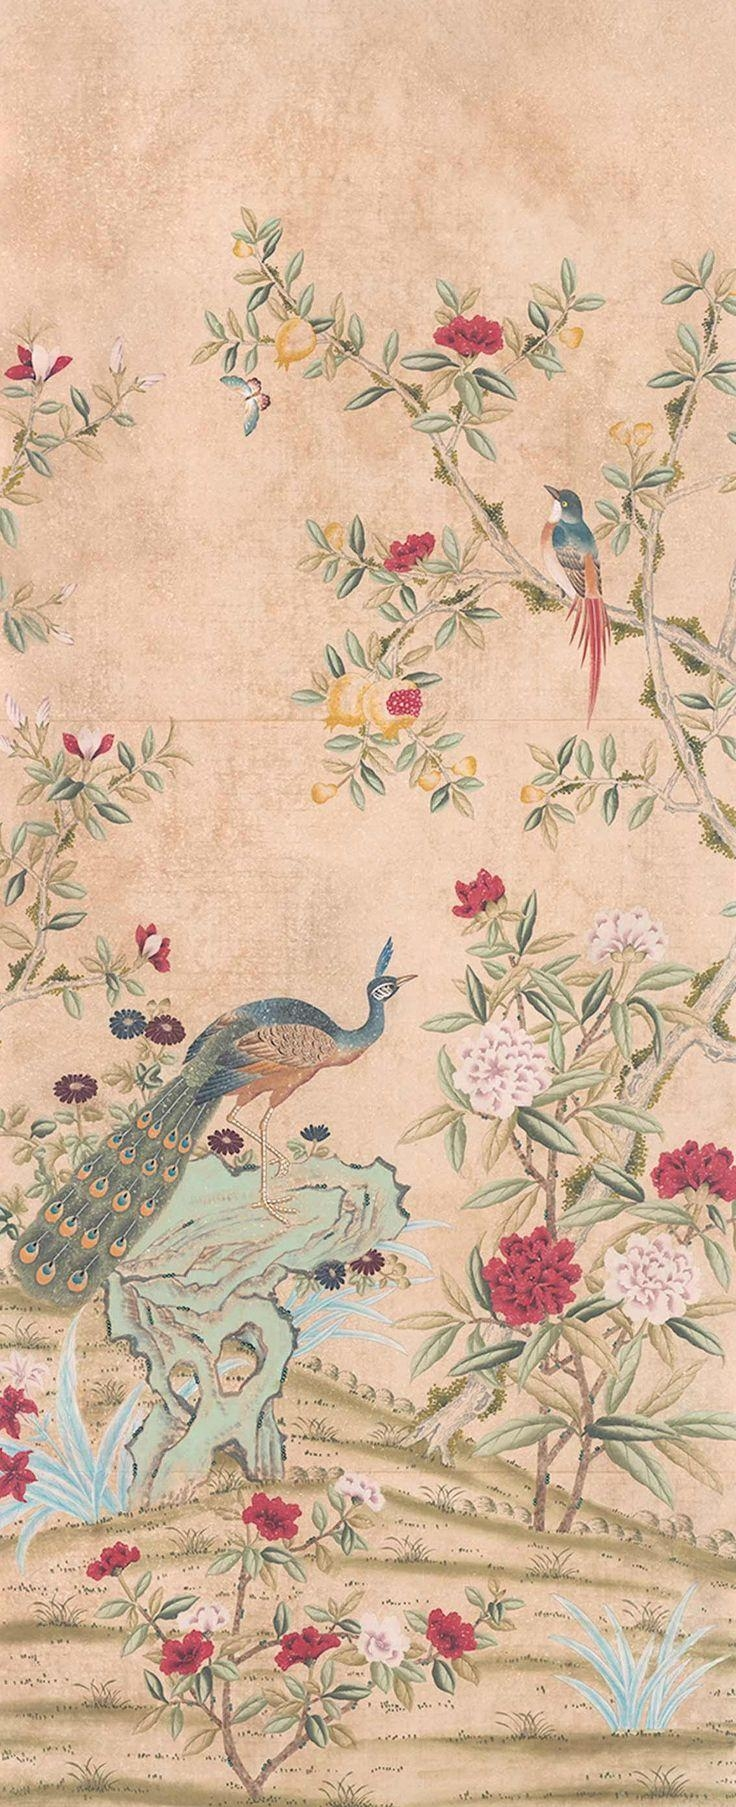 21 Best 1787 Collection Images On Pinterest | Chinoiserie, Hand In Chinoiserie Wall Art (View 20 of 20)